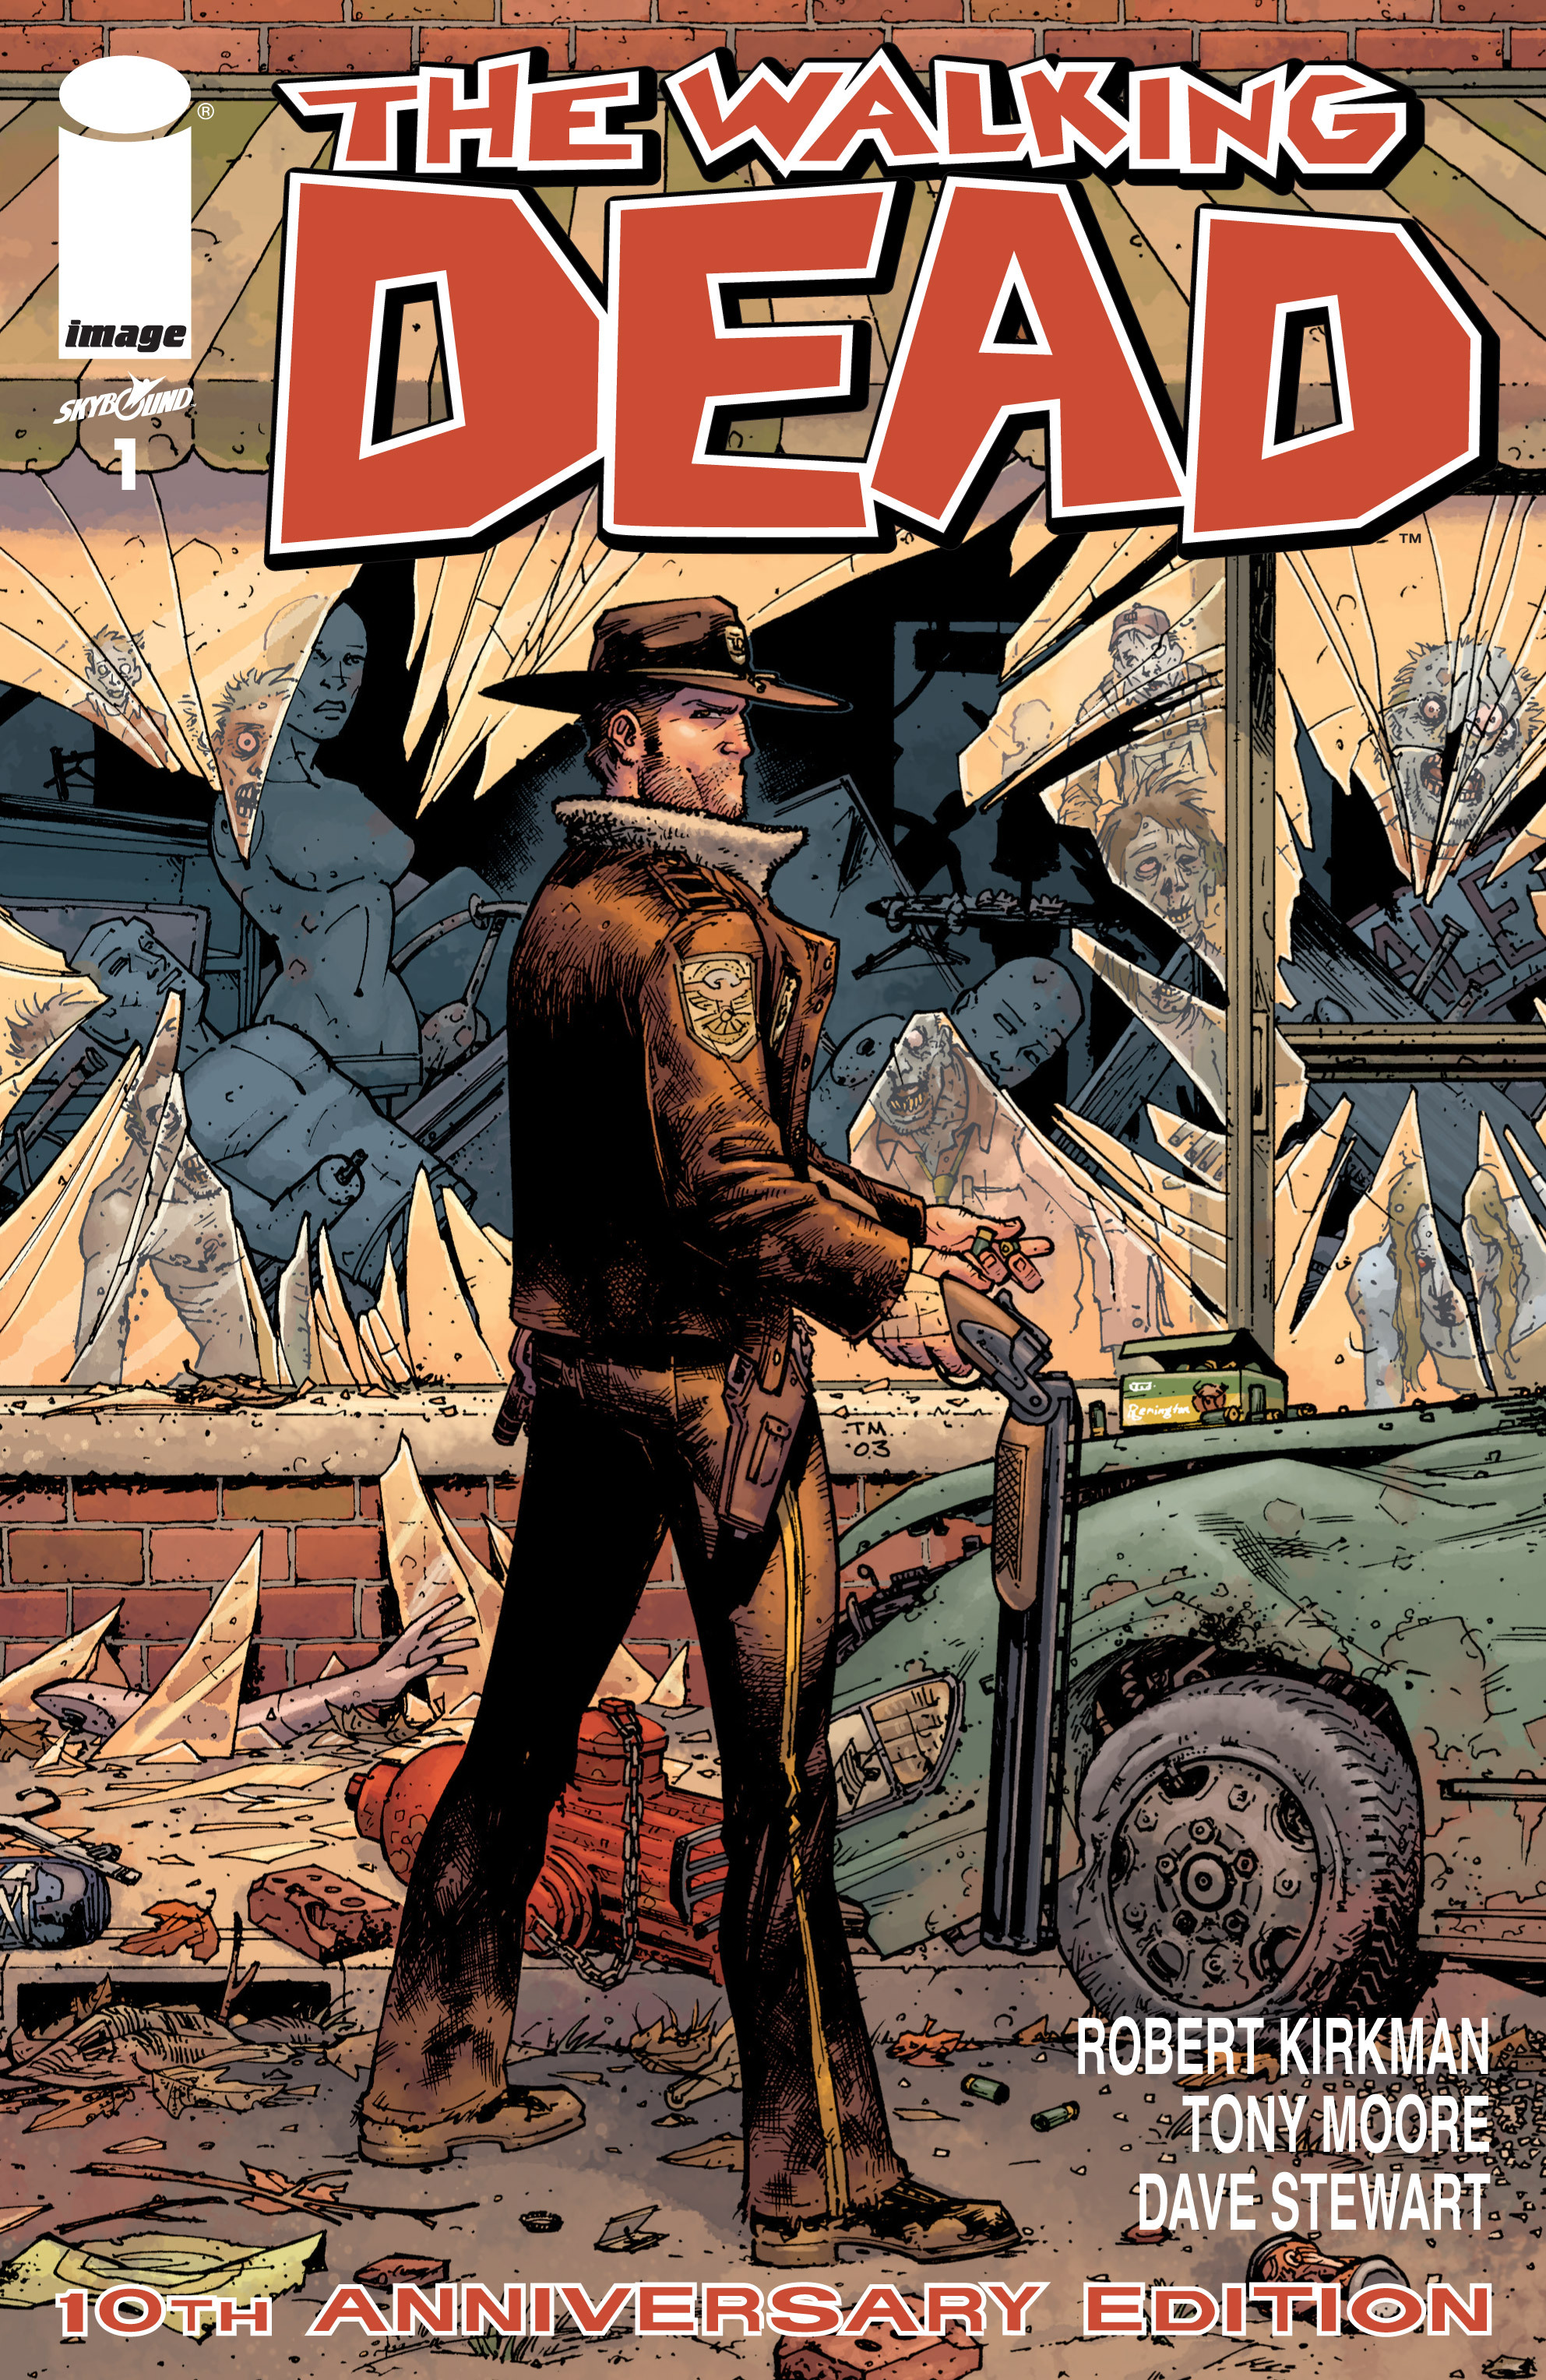 The Walking Dead _Special - 1 - 10th Anniversary Edition Page 1